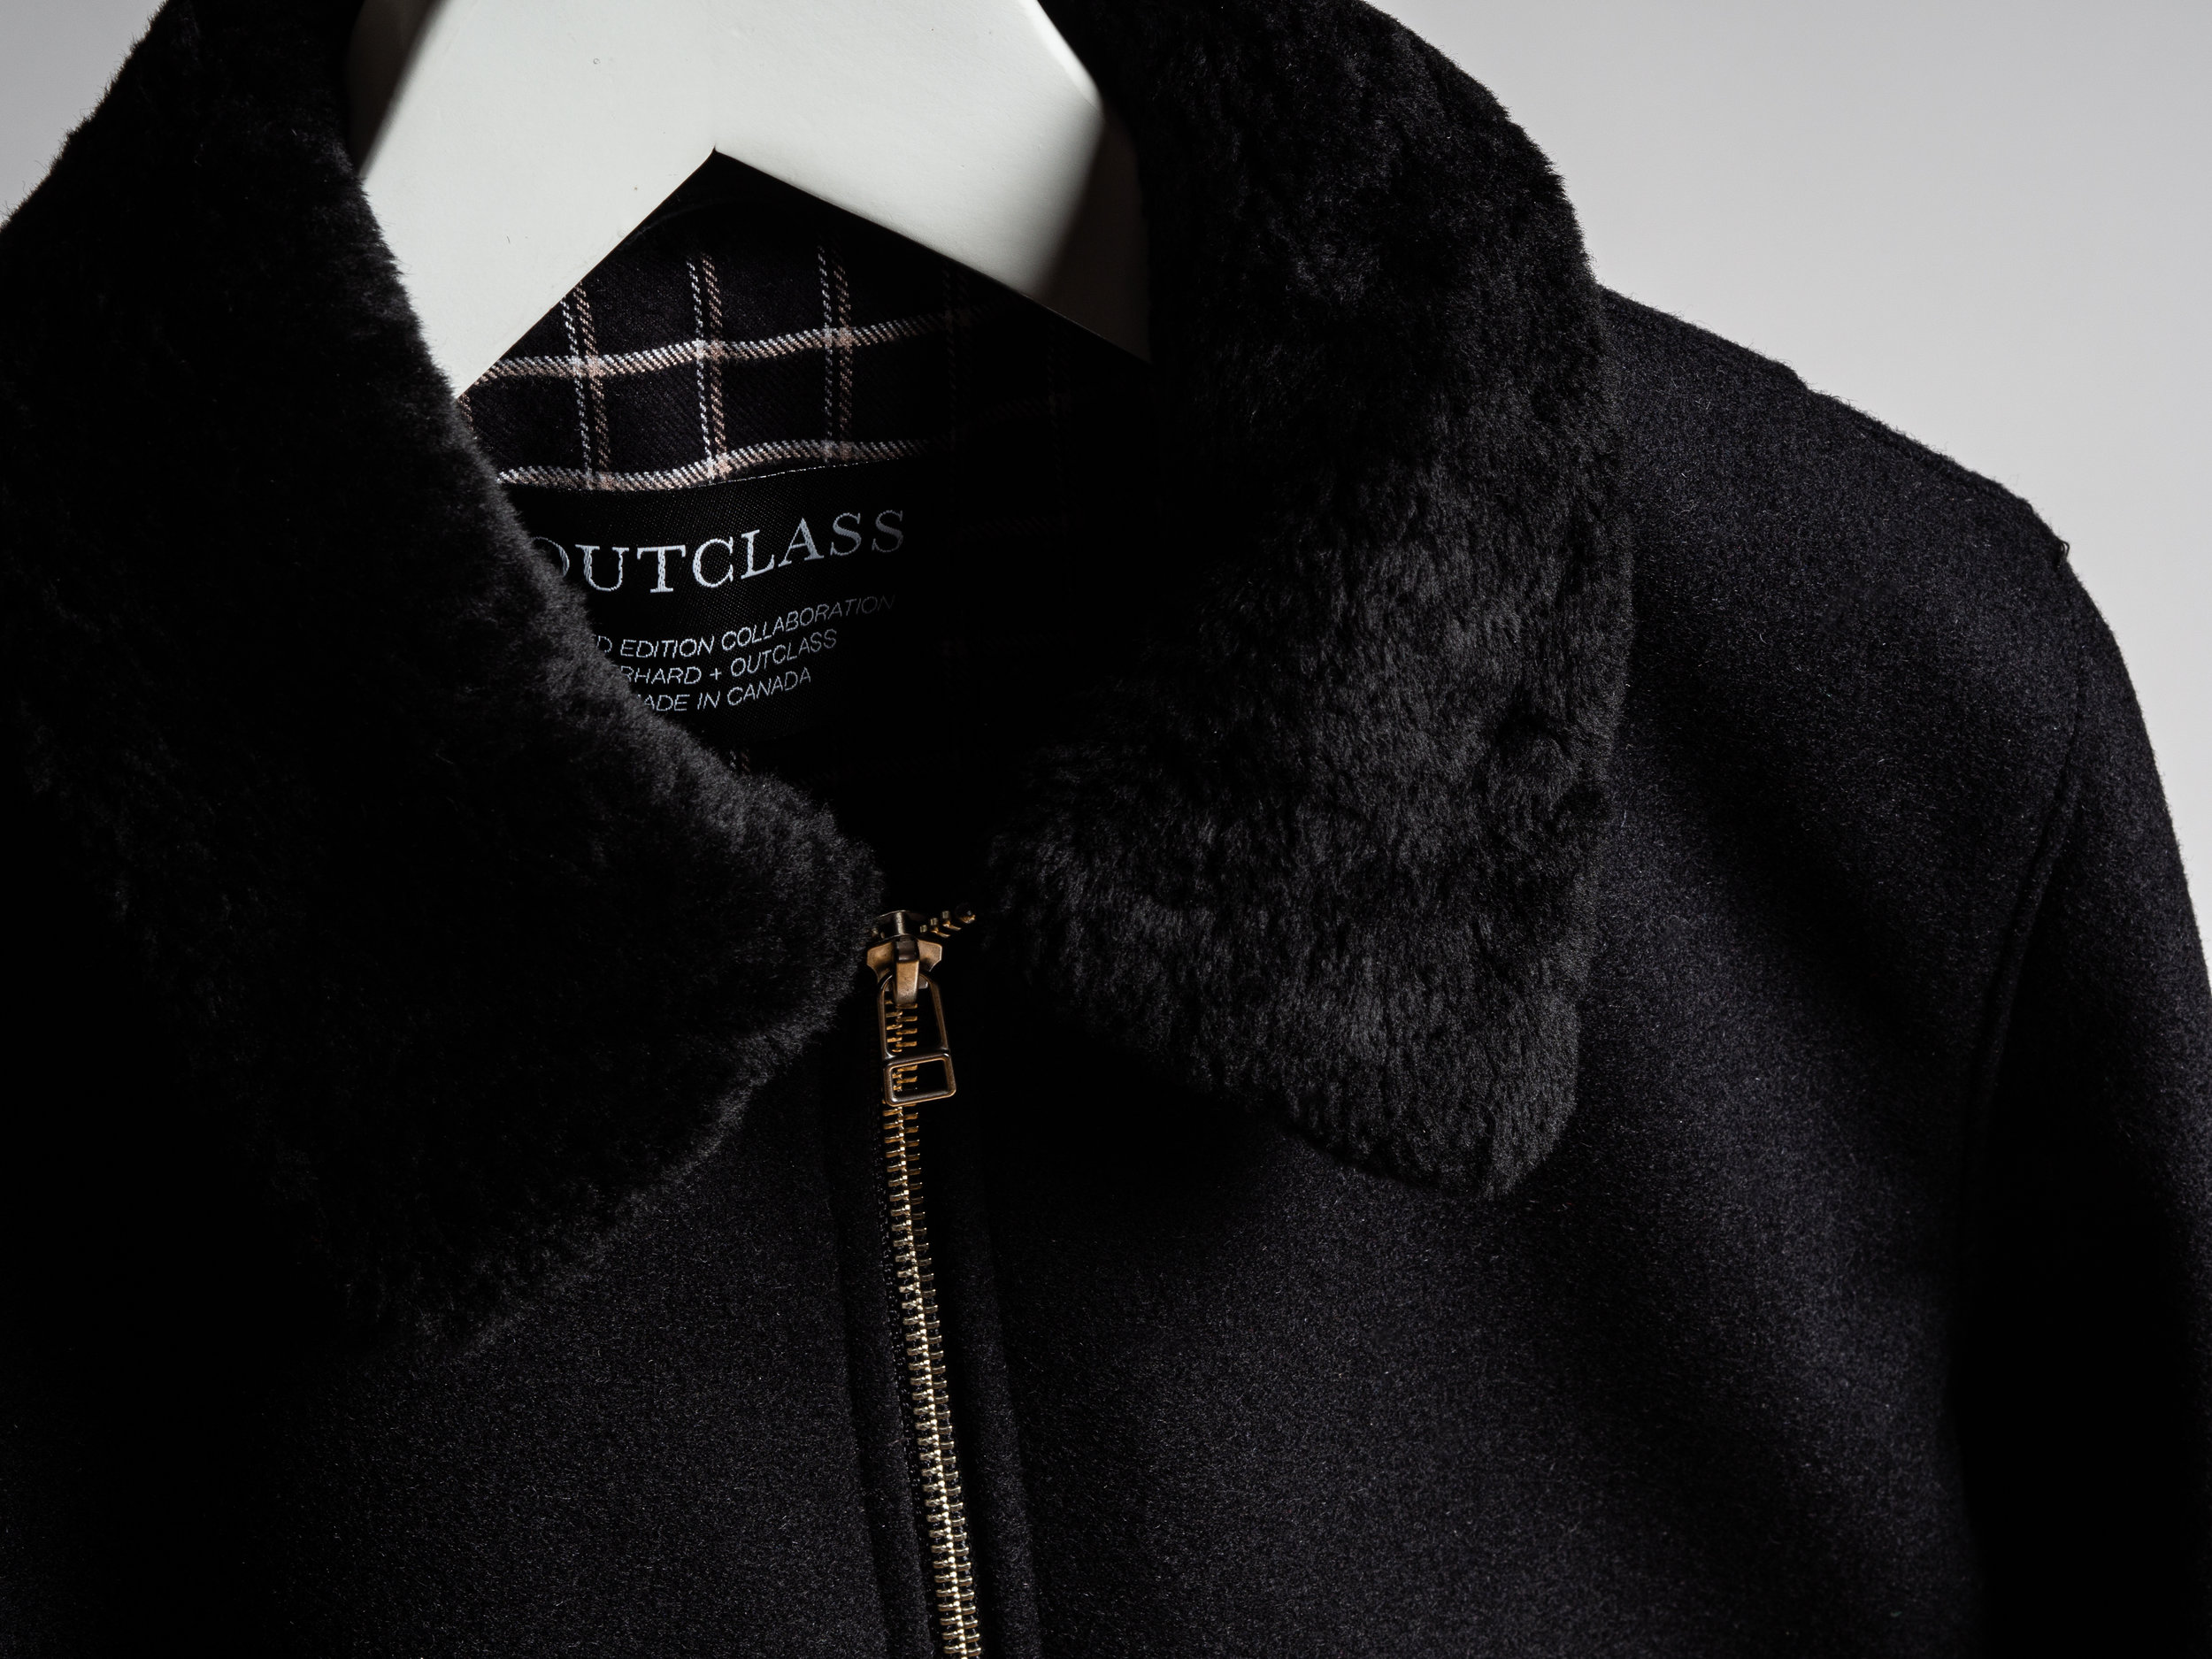 Outclass x GERHARD Aviator Jacket - Produced in very limited quantities, and a GERHARD exclusive, this collaborative aviator jacket features a melton wool body, and a classic aviator collar made with real shearling. The jacket is insulated with a soft checked flannel, and lined in the arms for easy on and off. The jacket is finished with a ribbed collar, cuffs and hem, and has an interior zip pocket for additional storage. As always, Outclass is Made in Canada.